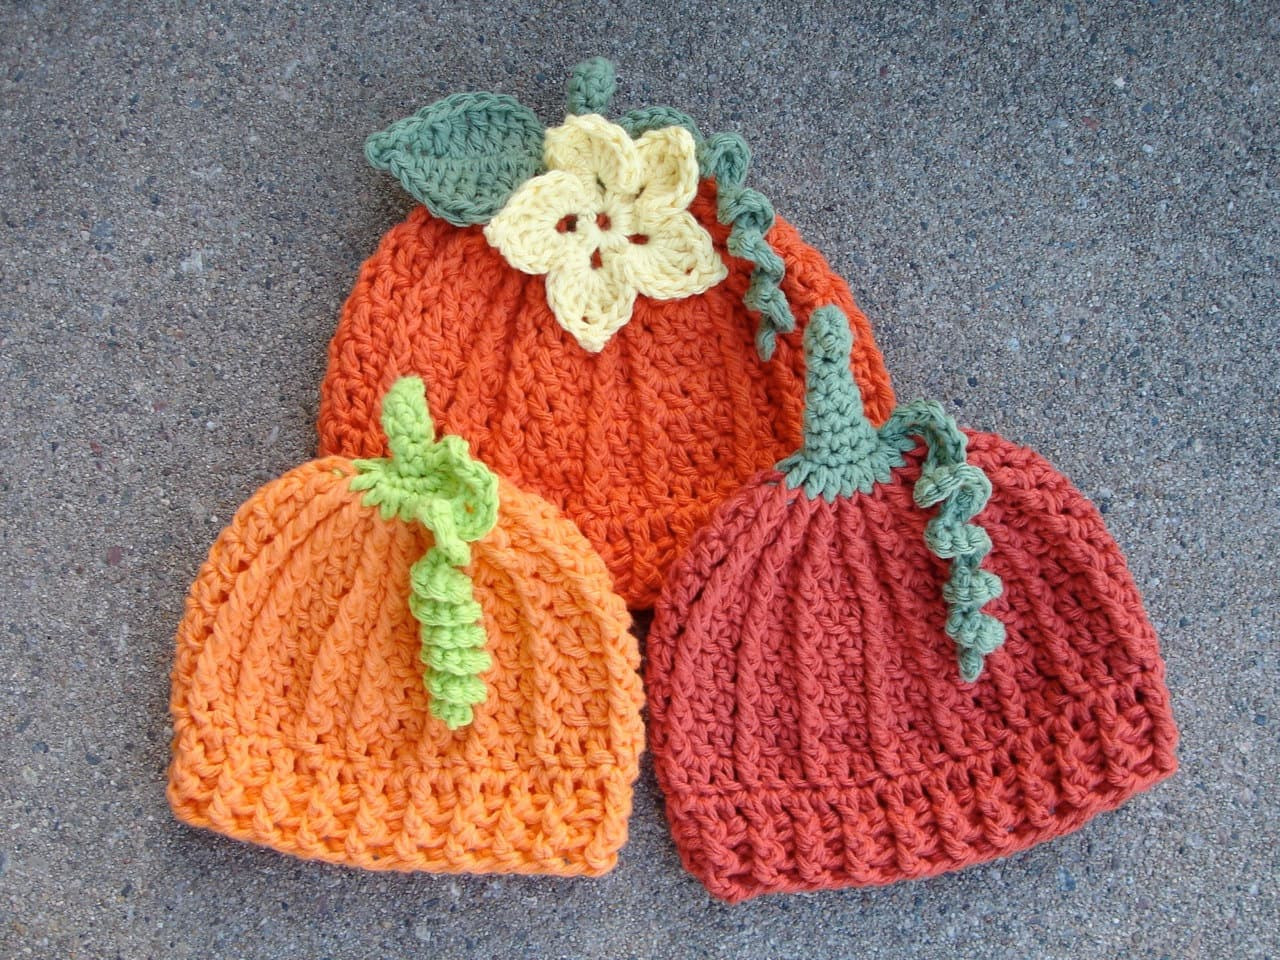 Best Of 3 Knitted Pumpkin Hat Patterns Sizzle Stich Knitted Pumpkin Hat Of Marvelous 40 Ideas Knitted Pumpkin Hat